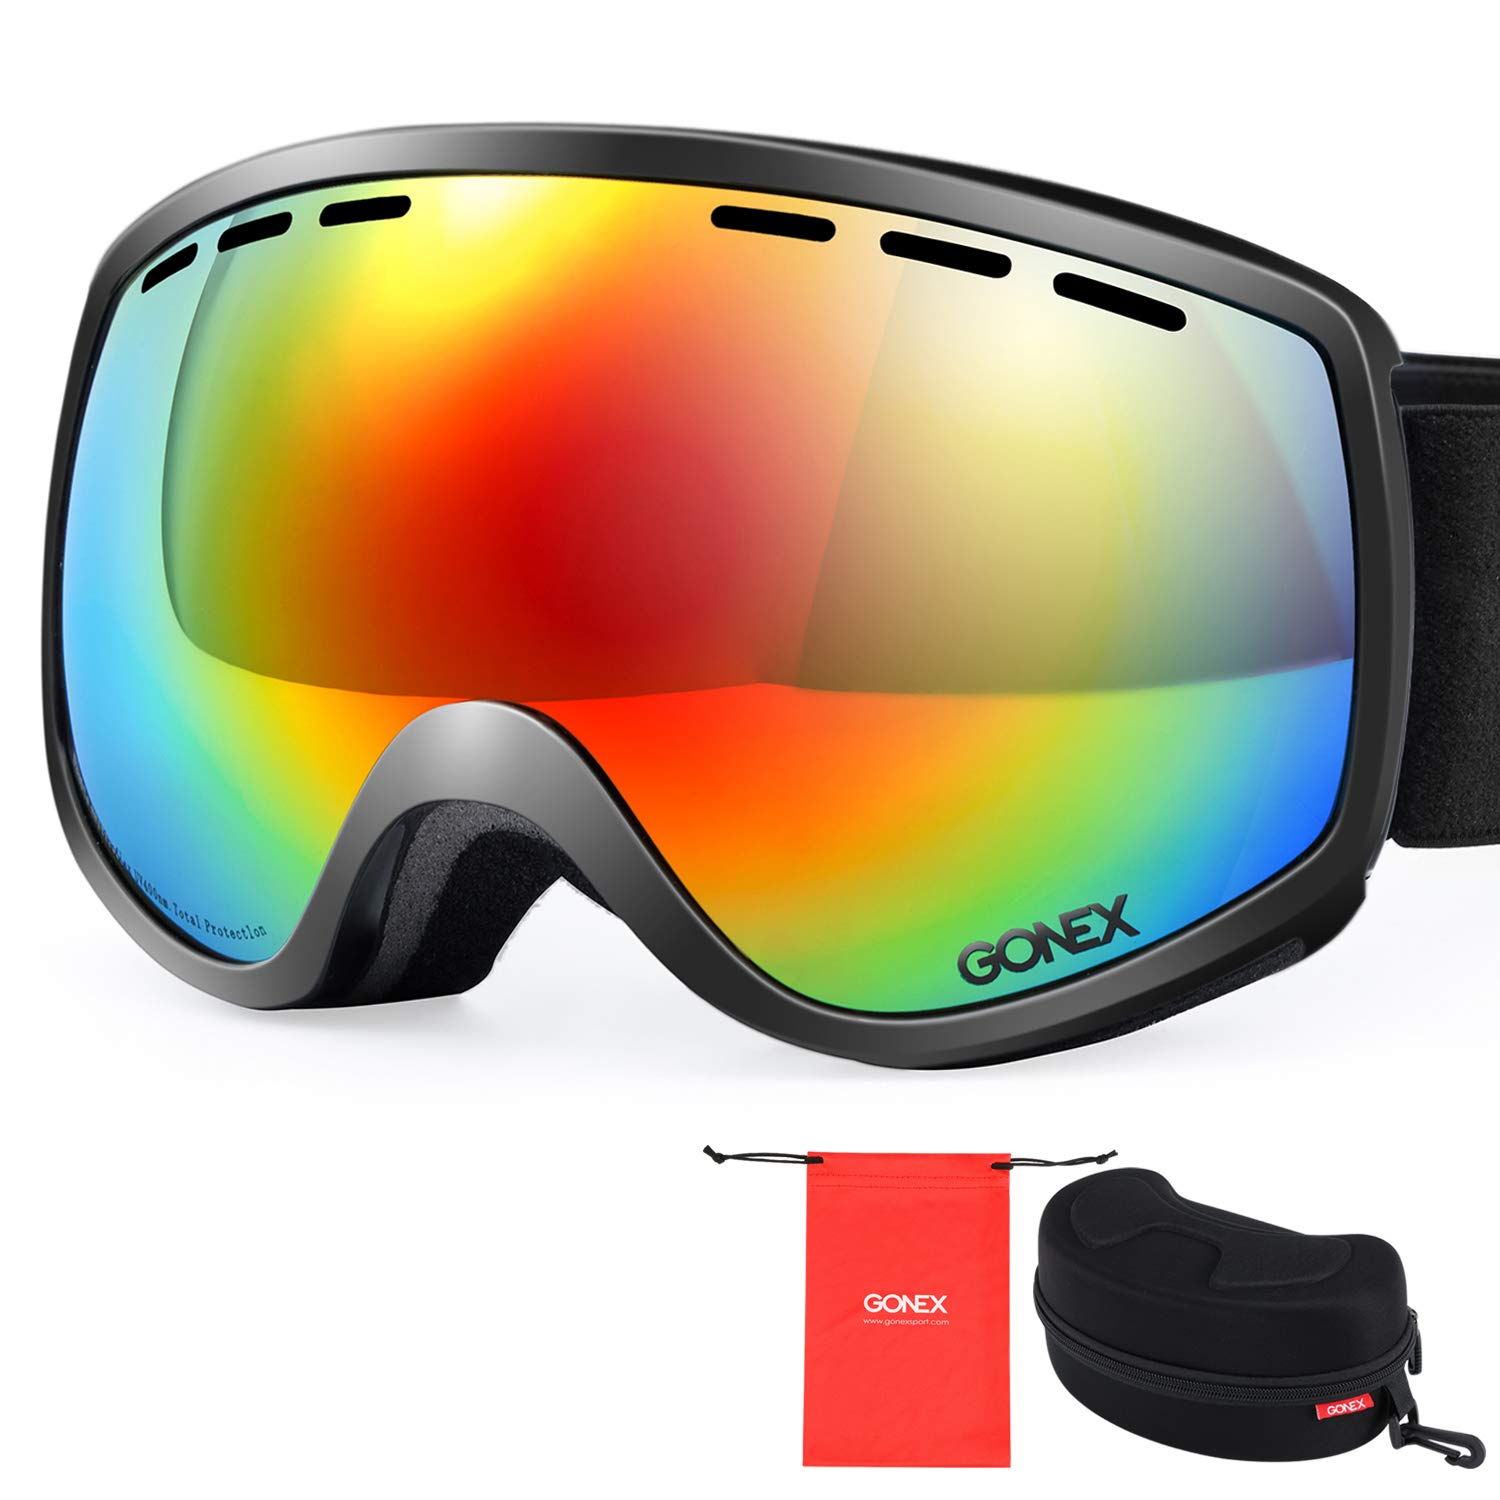 25bb13b25df8 Amazon.com   Gonex Ski Snow Goggles Anti-fog Windproof UV400 Protection  with Double Spherical Lens with Goggle Case